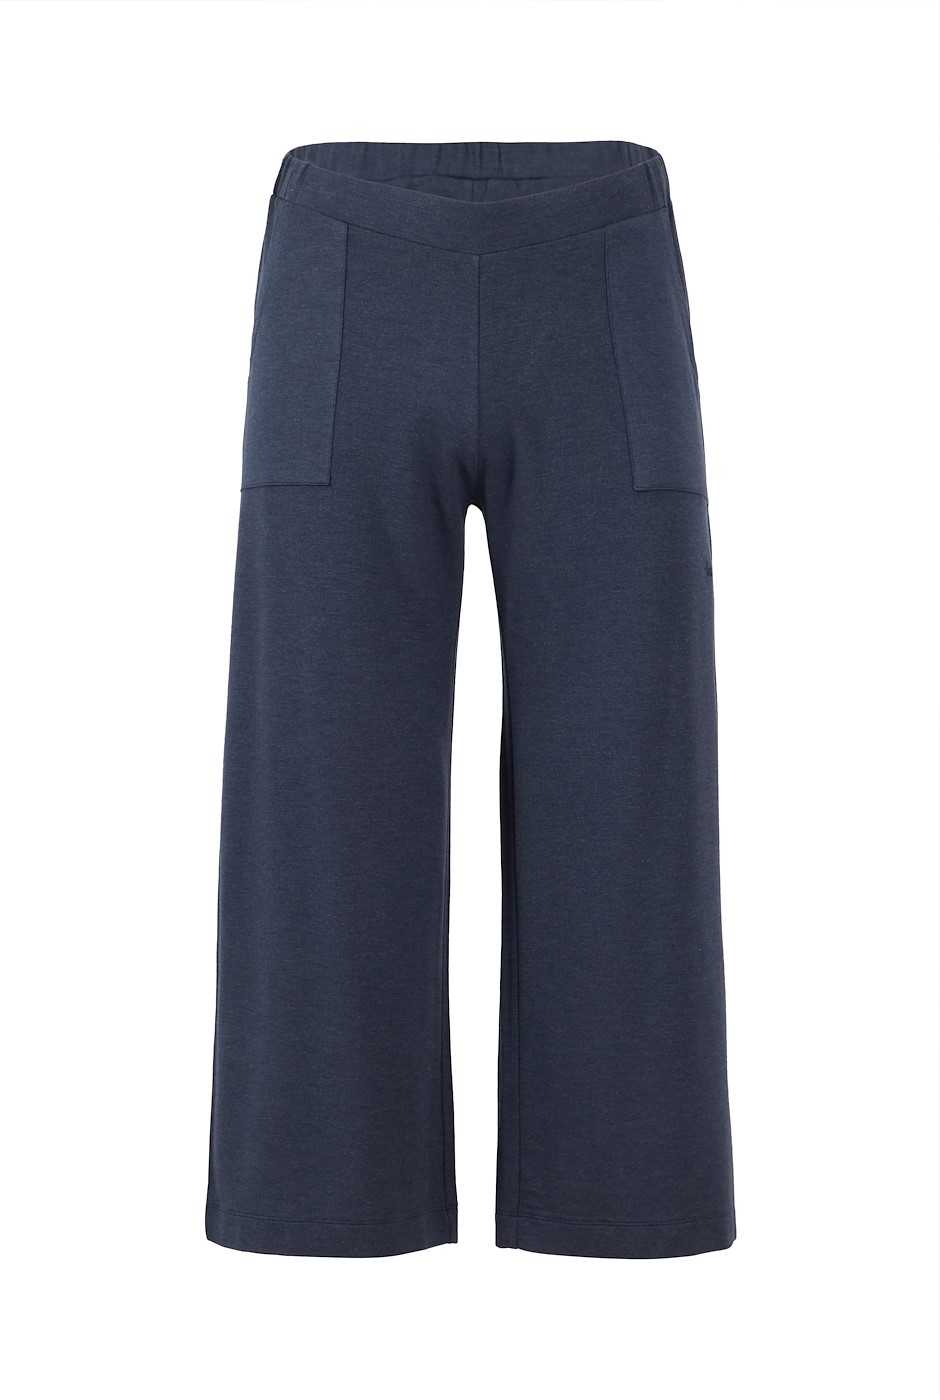 Tilda Bamboo Wide Leg Trousers Navy Marl